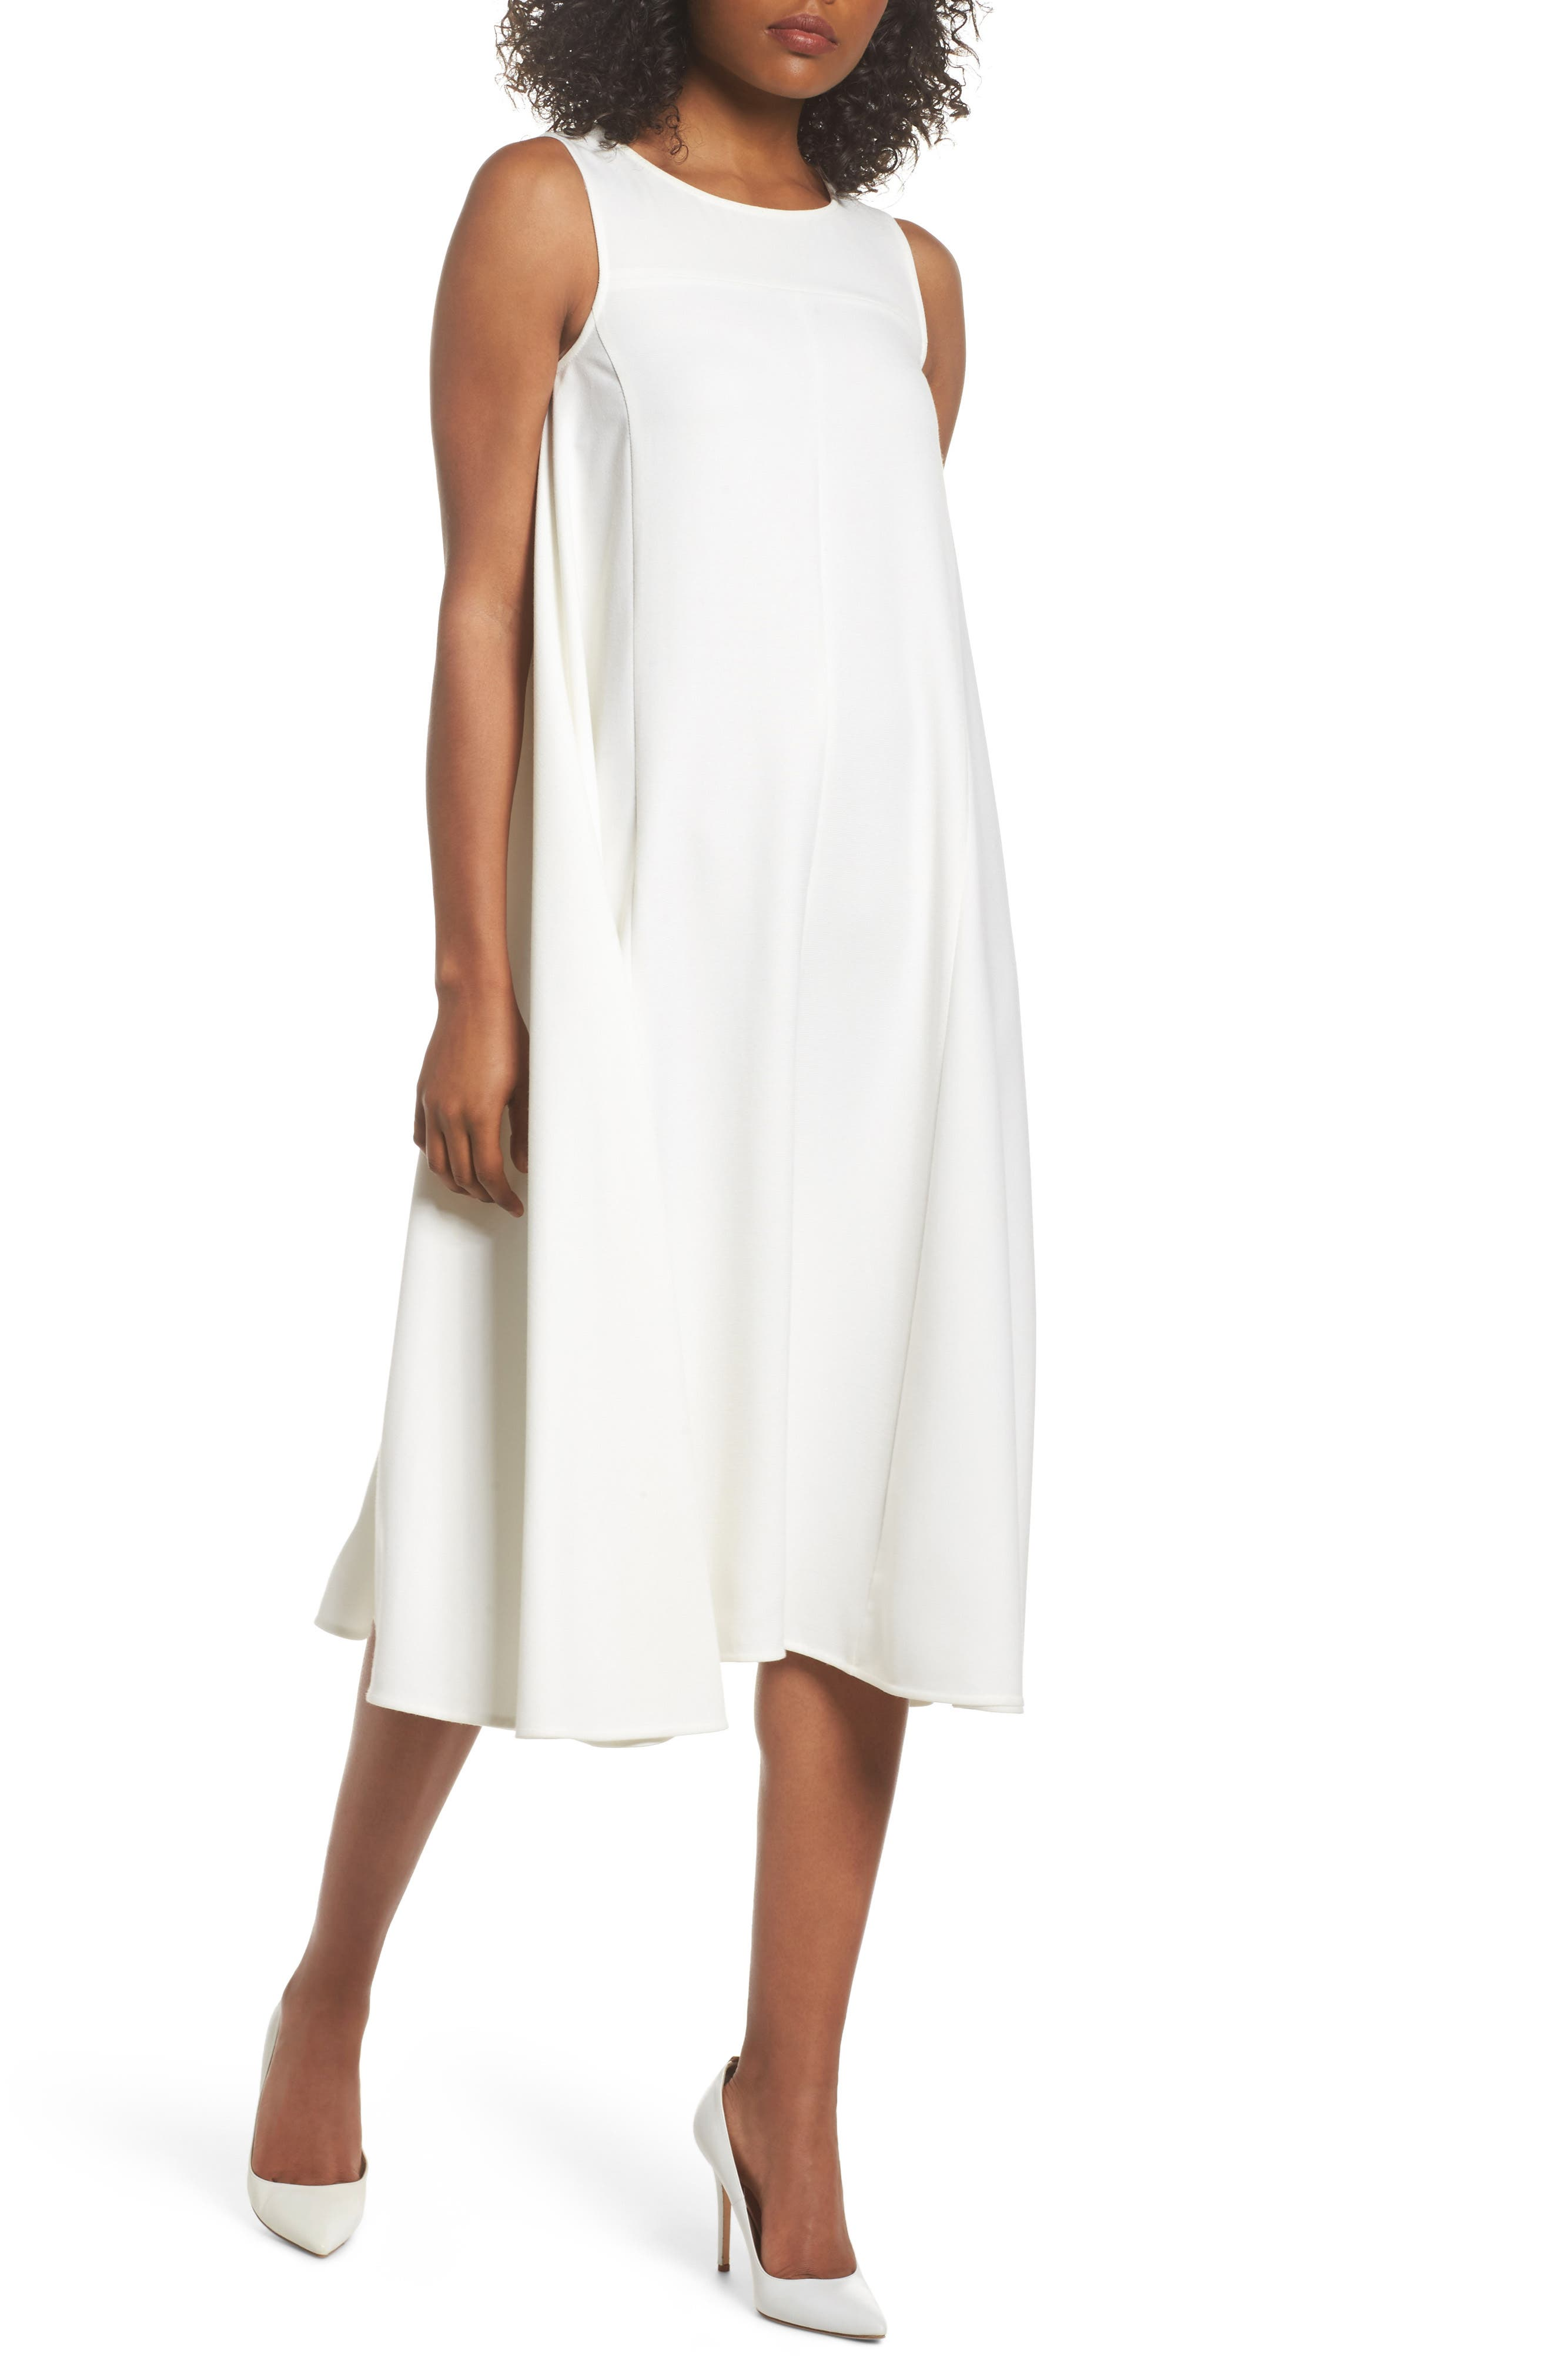 Sunday Brunch Sleeveless Midi Dress,                         Main,                         color, 100